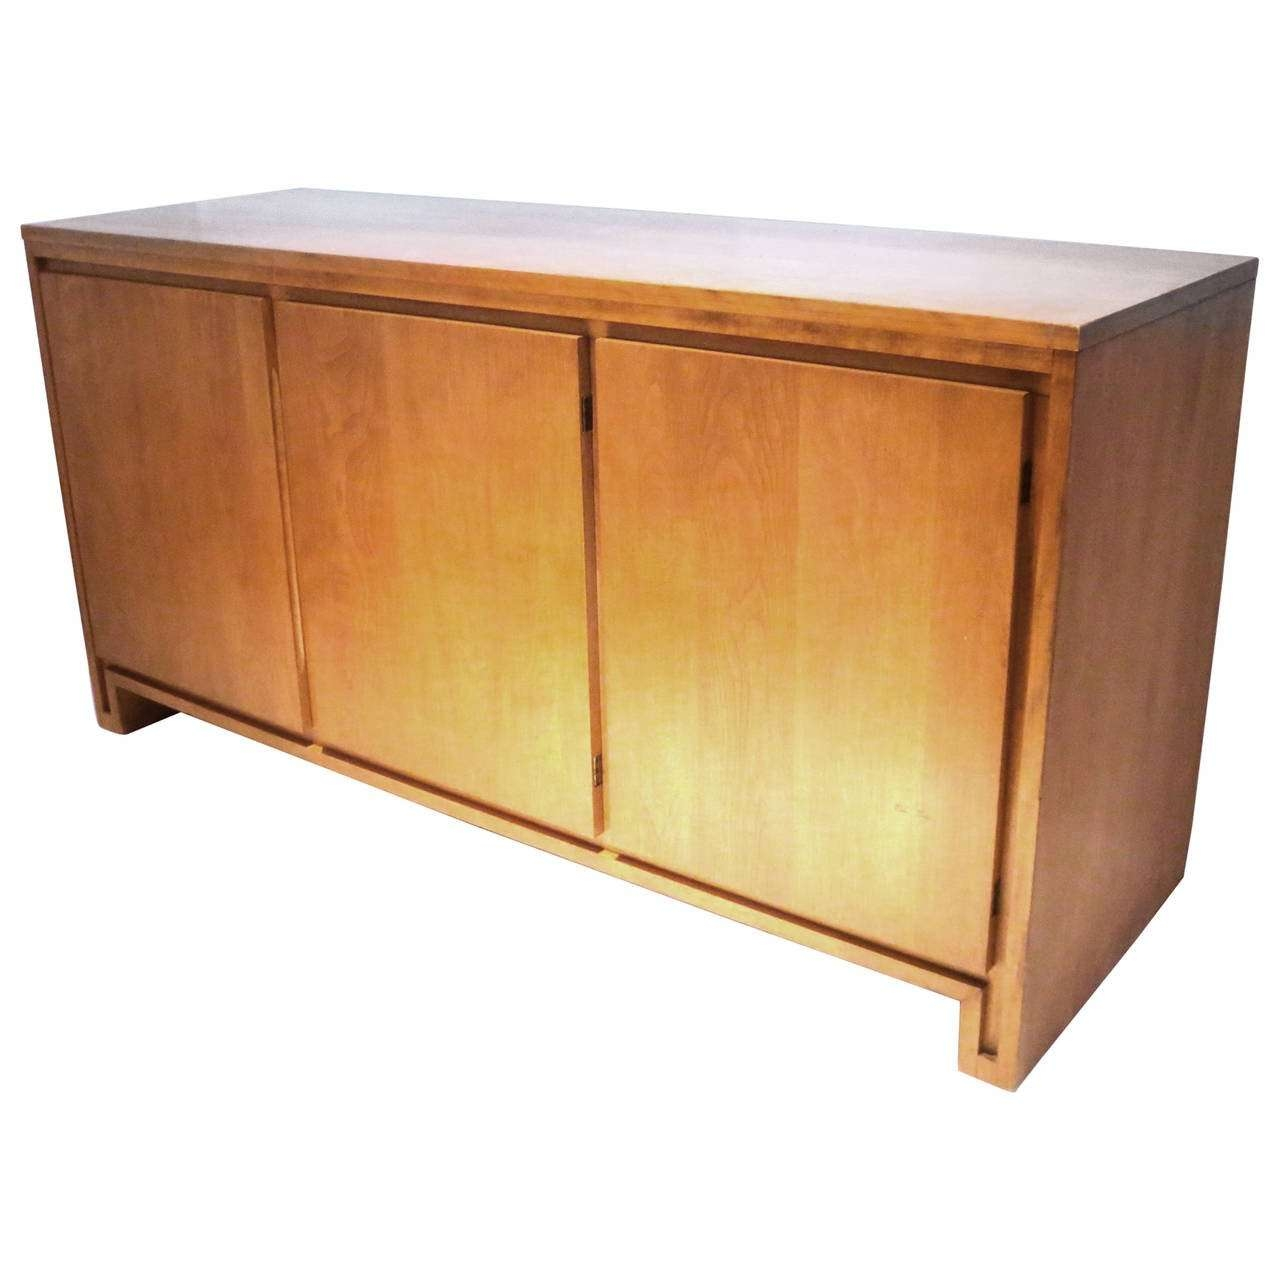 1950S Solid Maple Sideboard Or Credenza Designrussel Wright Within Maple Sideboards (Gallery 5 of 20)